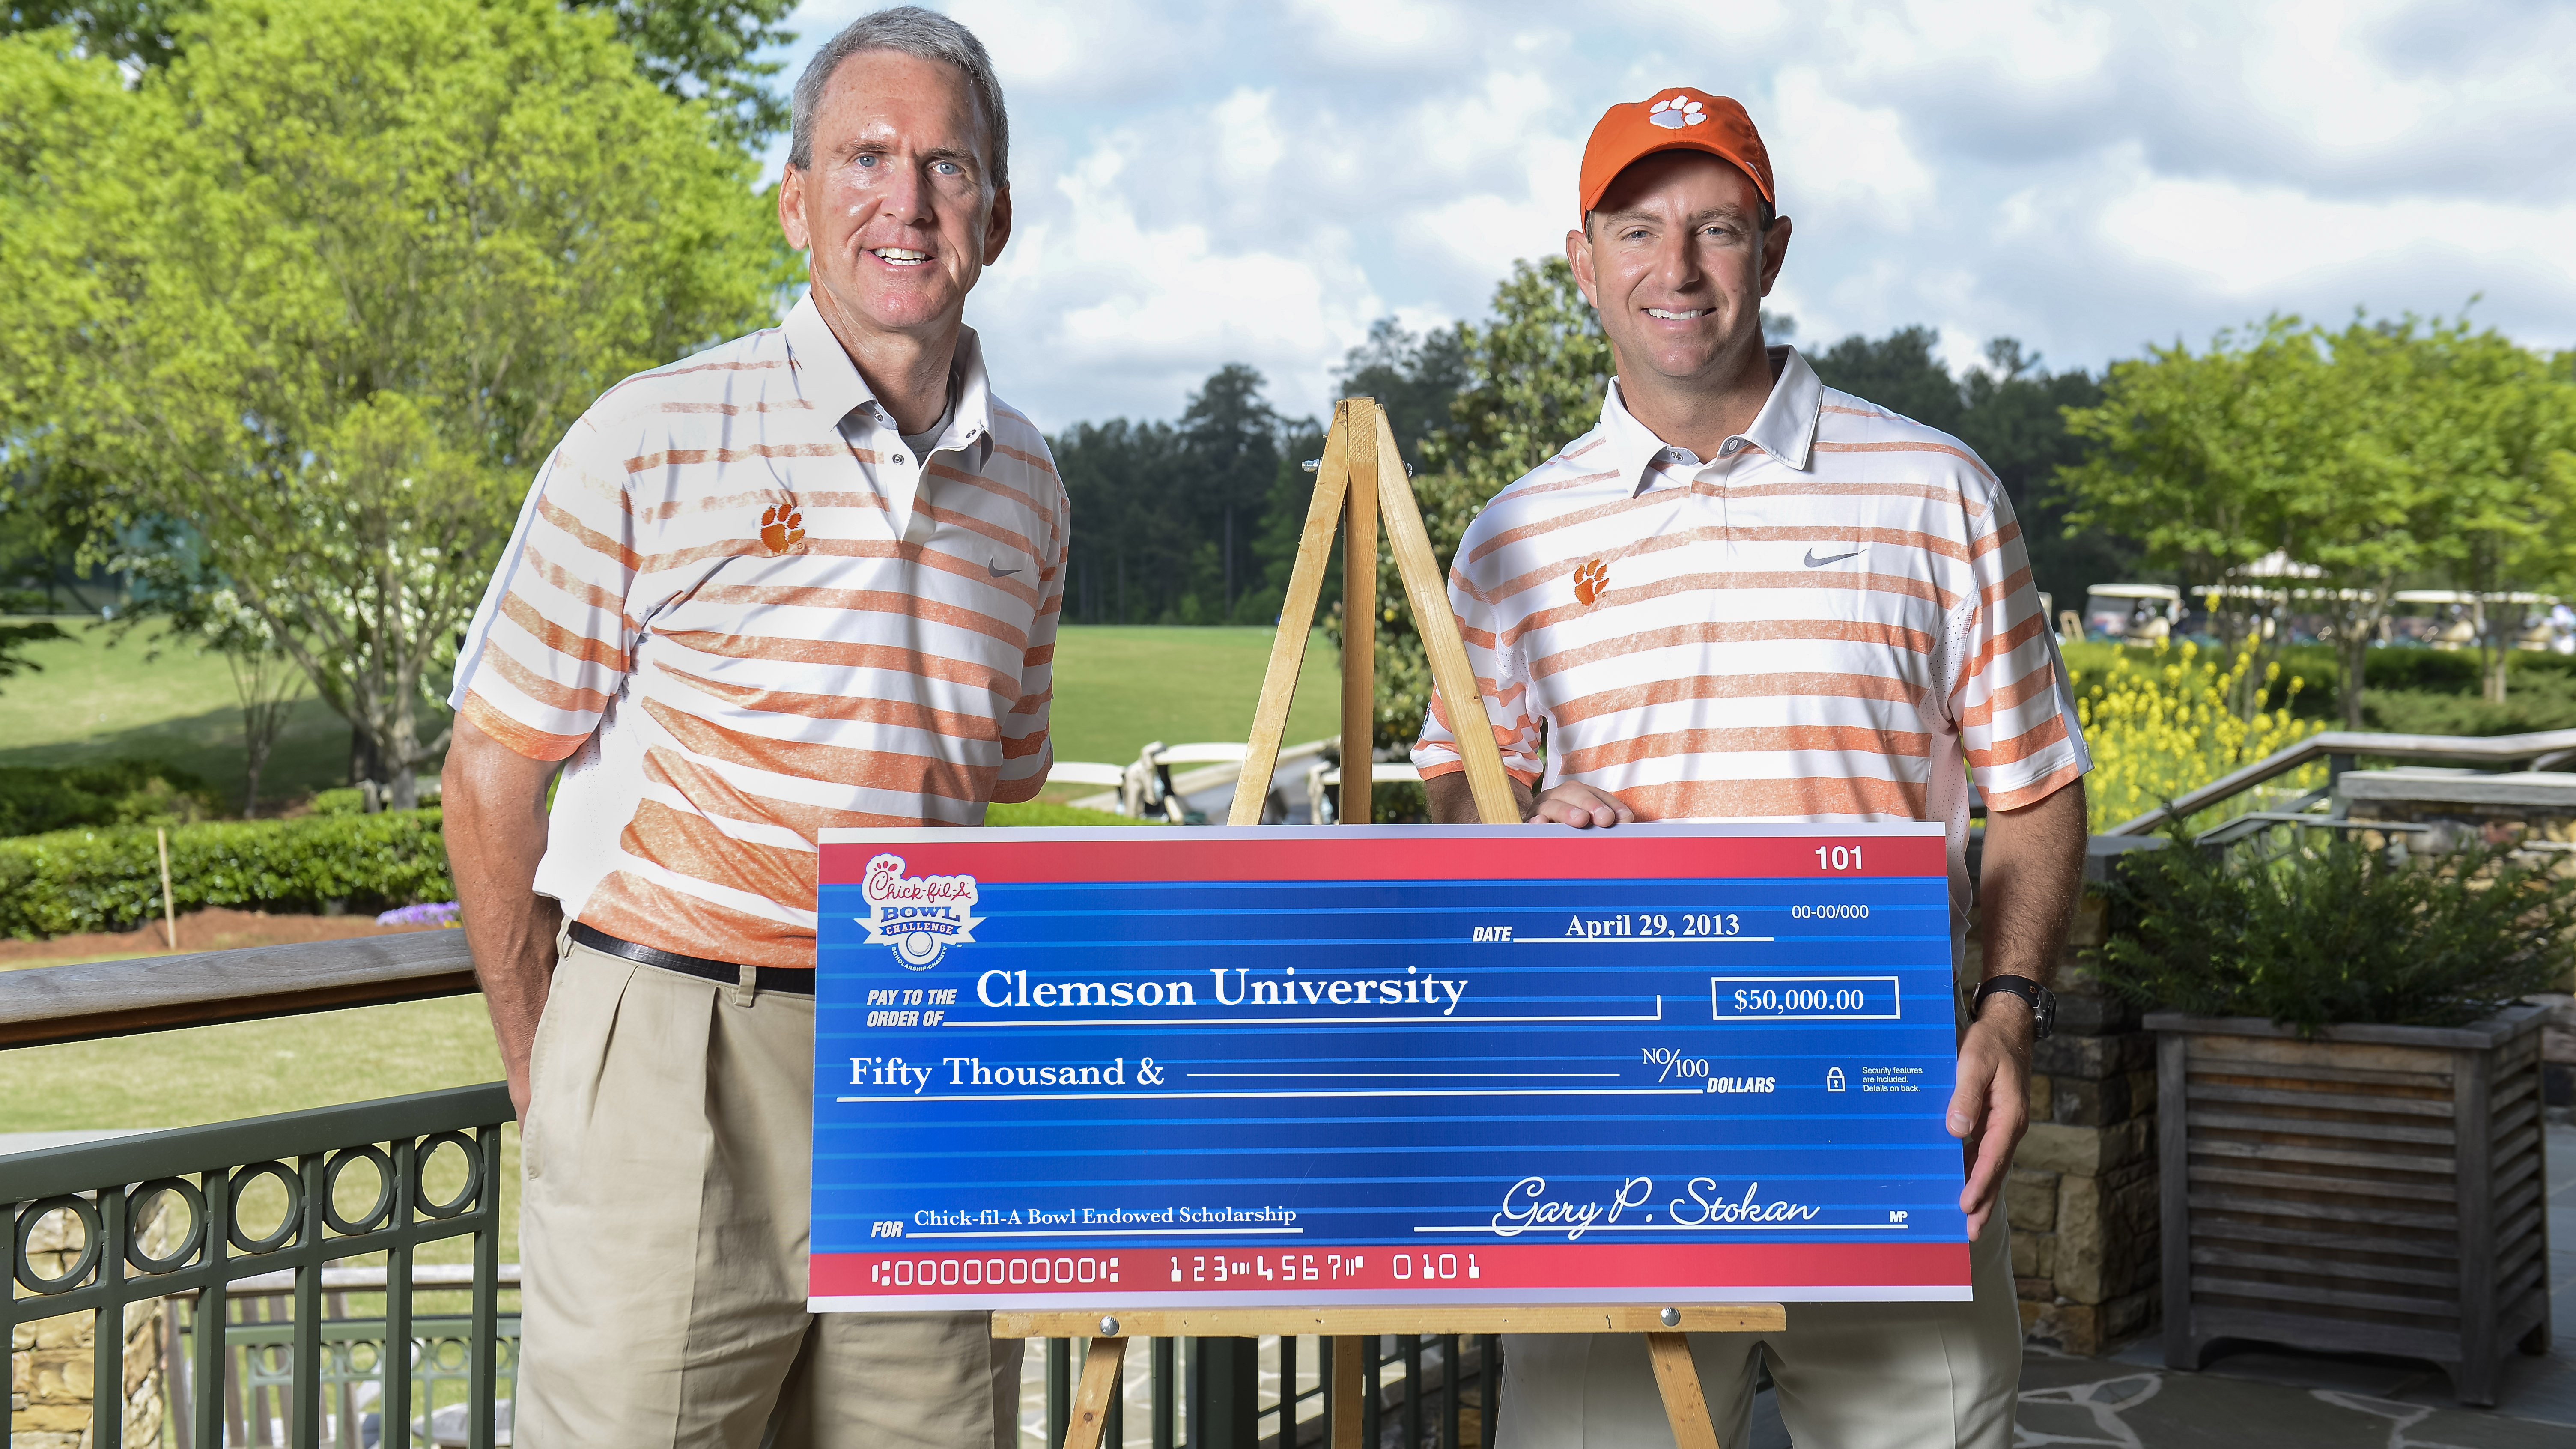 Swinney and Fuller Tie for Third at 2013 Chick-fil-A Bowl Challenge